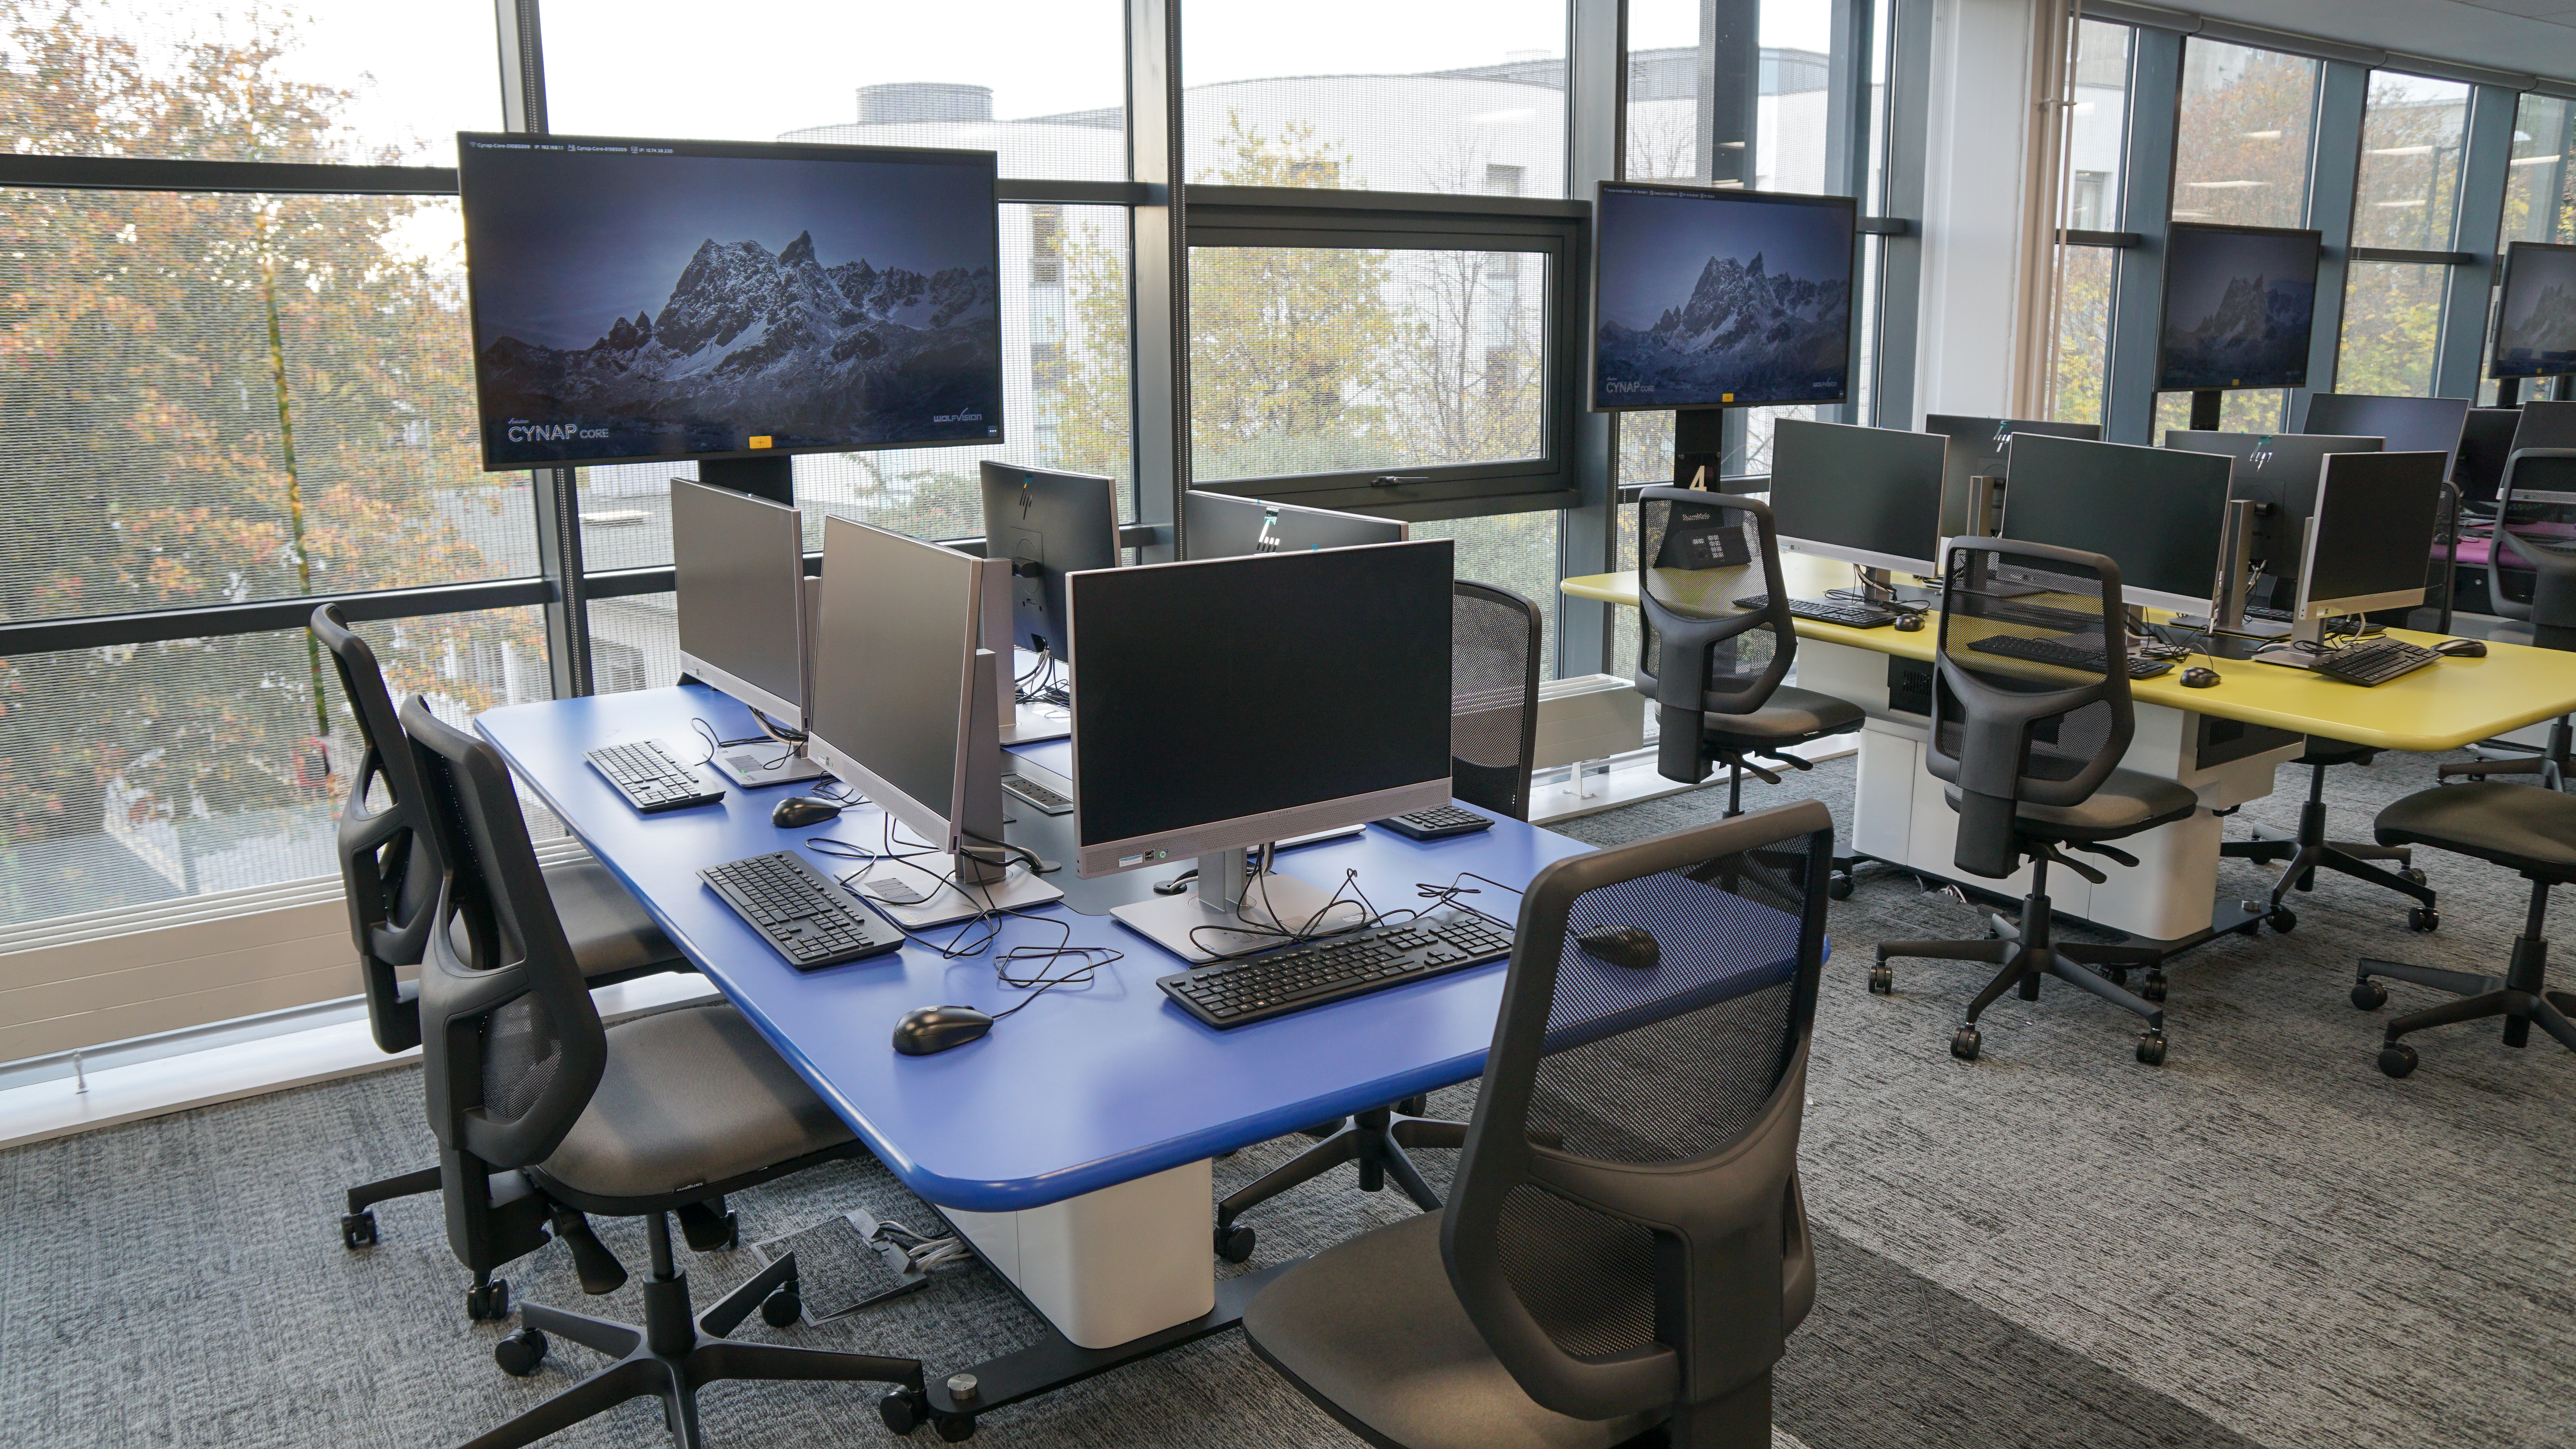 Cynap Core-equipped student workstations